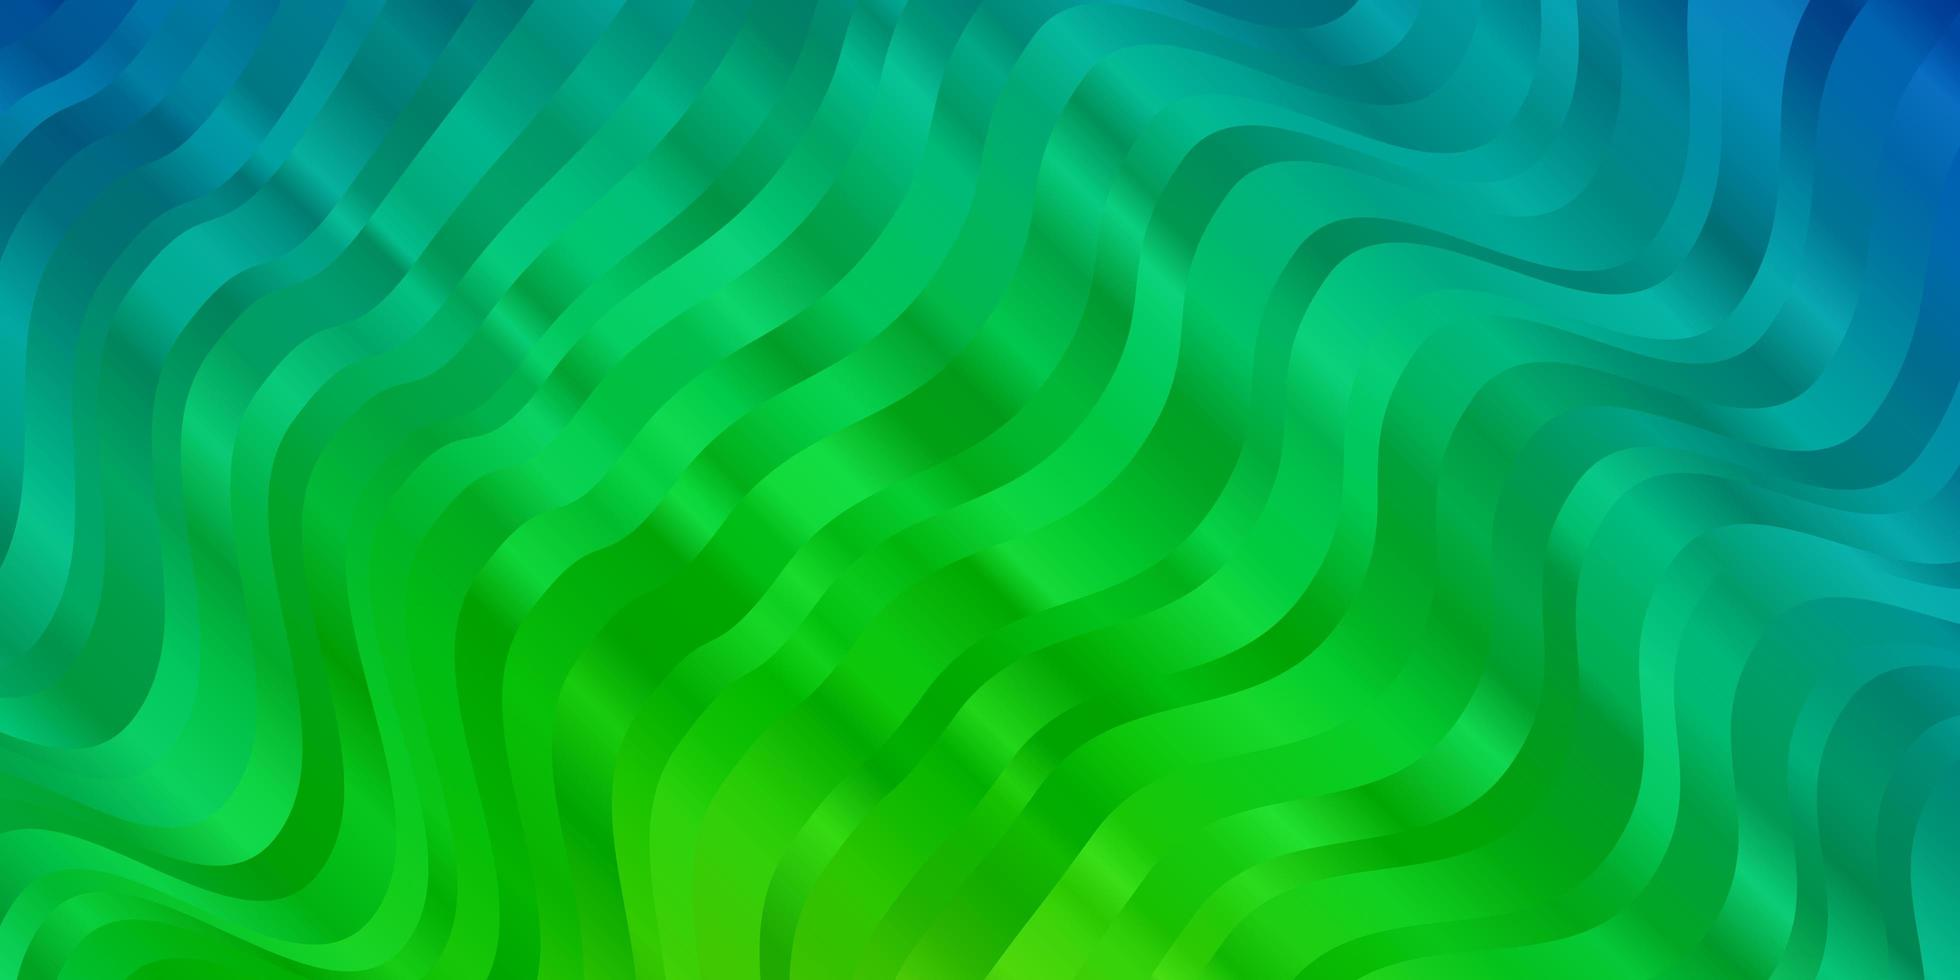 Light Blue, Green vector template with wry lines.